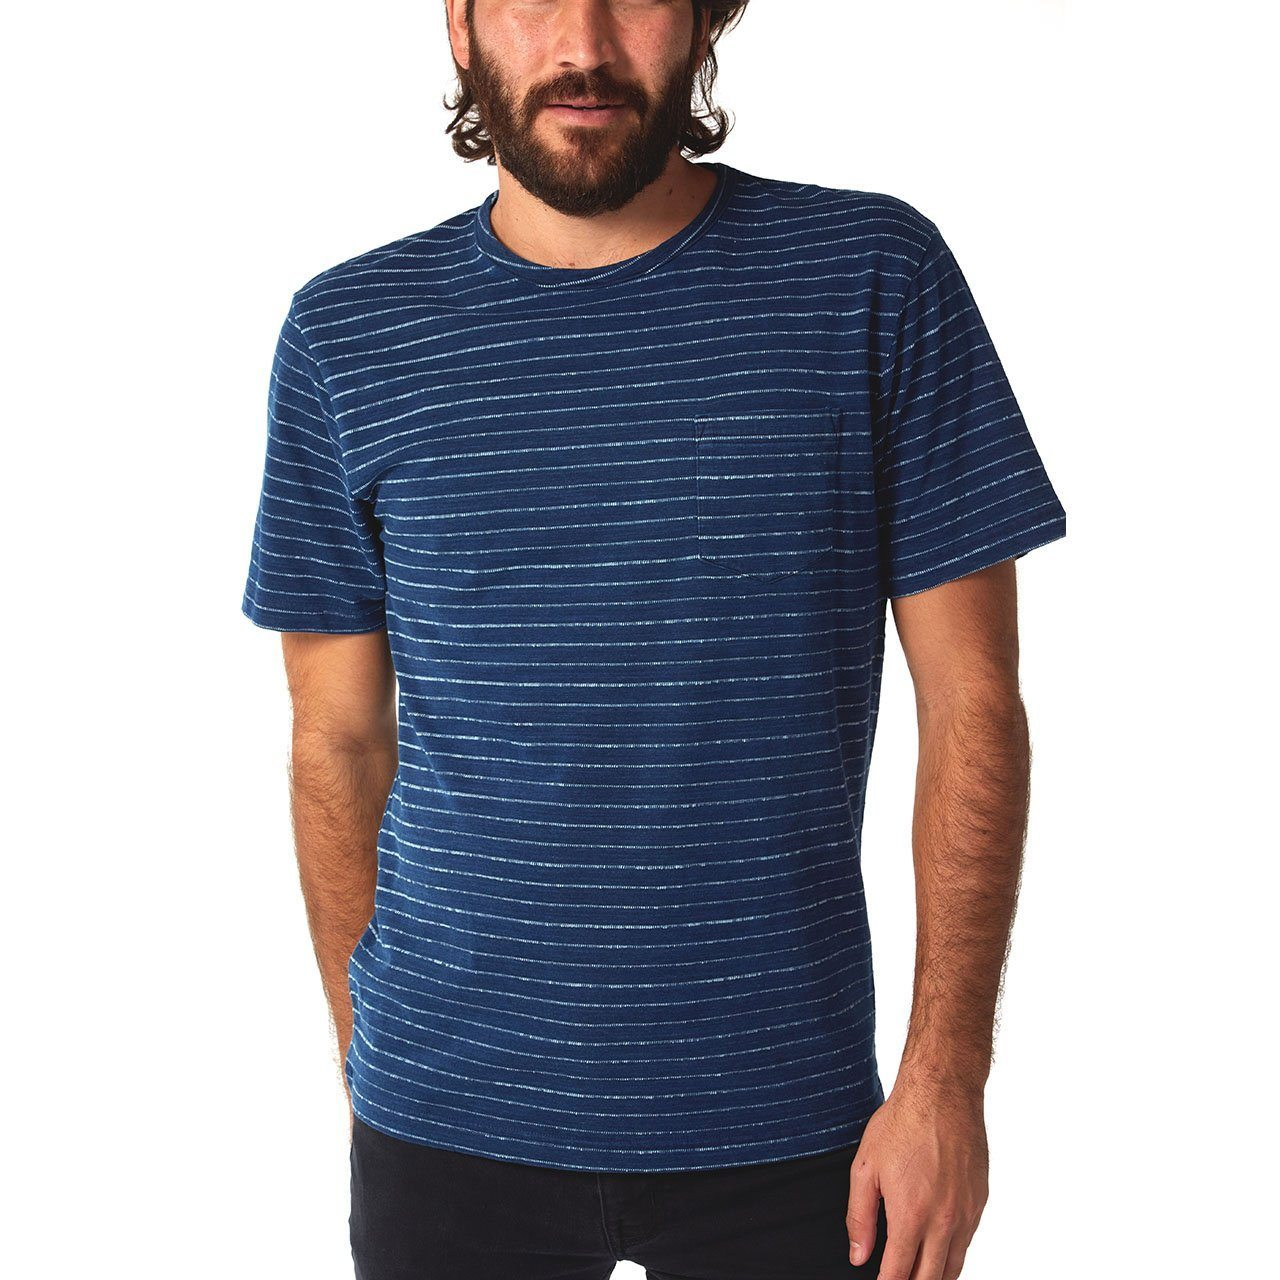 mens blue shirts stripe mens top designer mens clothes lord owens